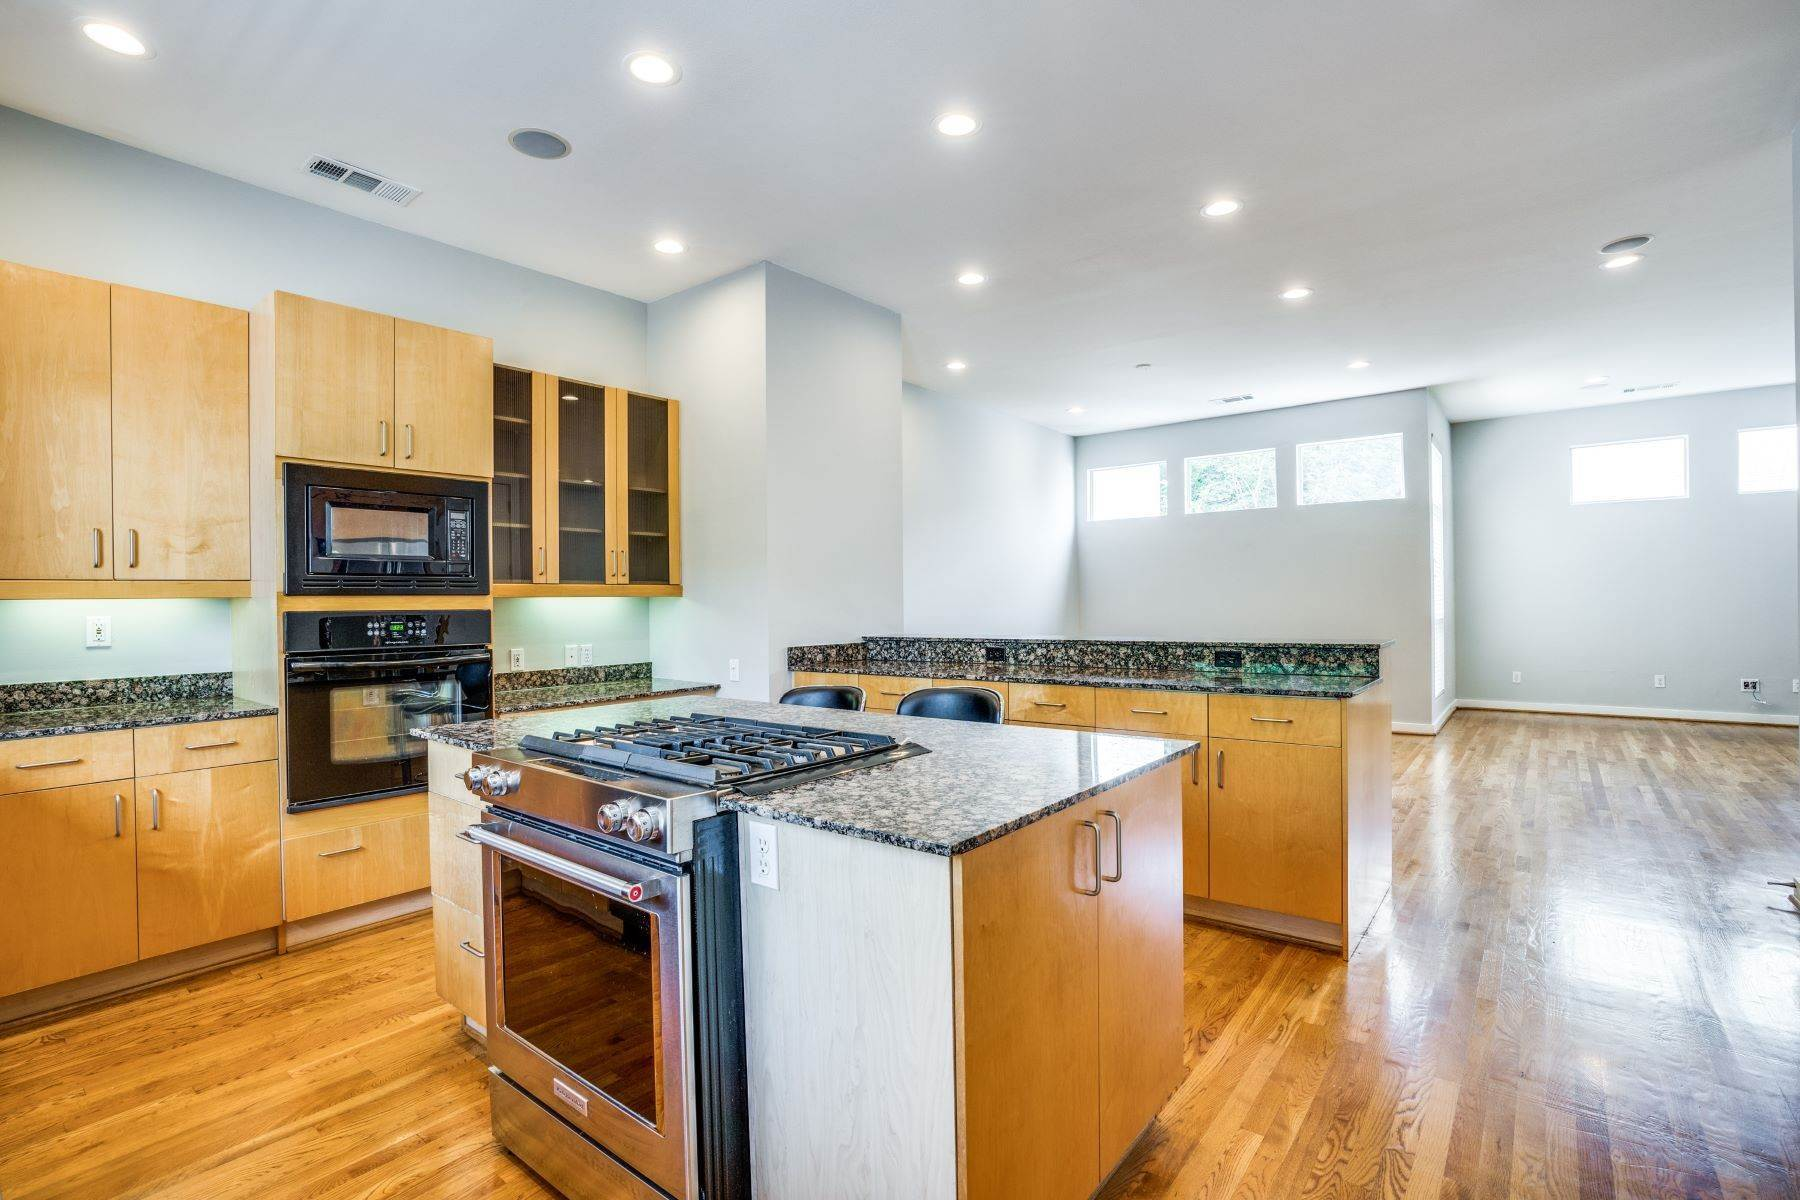 2. townhouses for Sale at Clean, Contemporary, Open Concept 3-Bedroom Townhouse 3925 Gilbert Avenue, #C Dallas, Texas 75219 United States